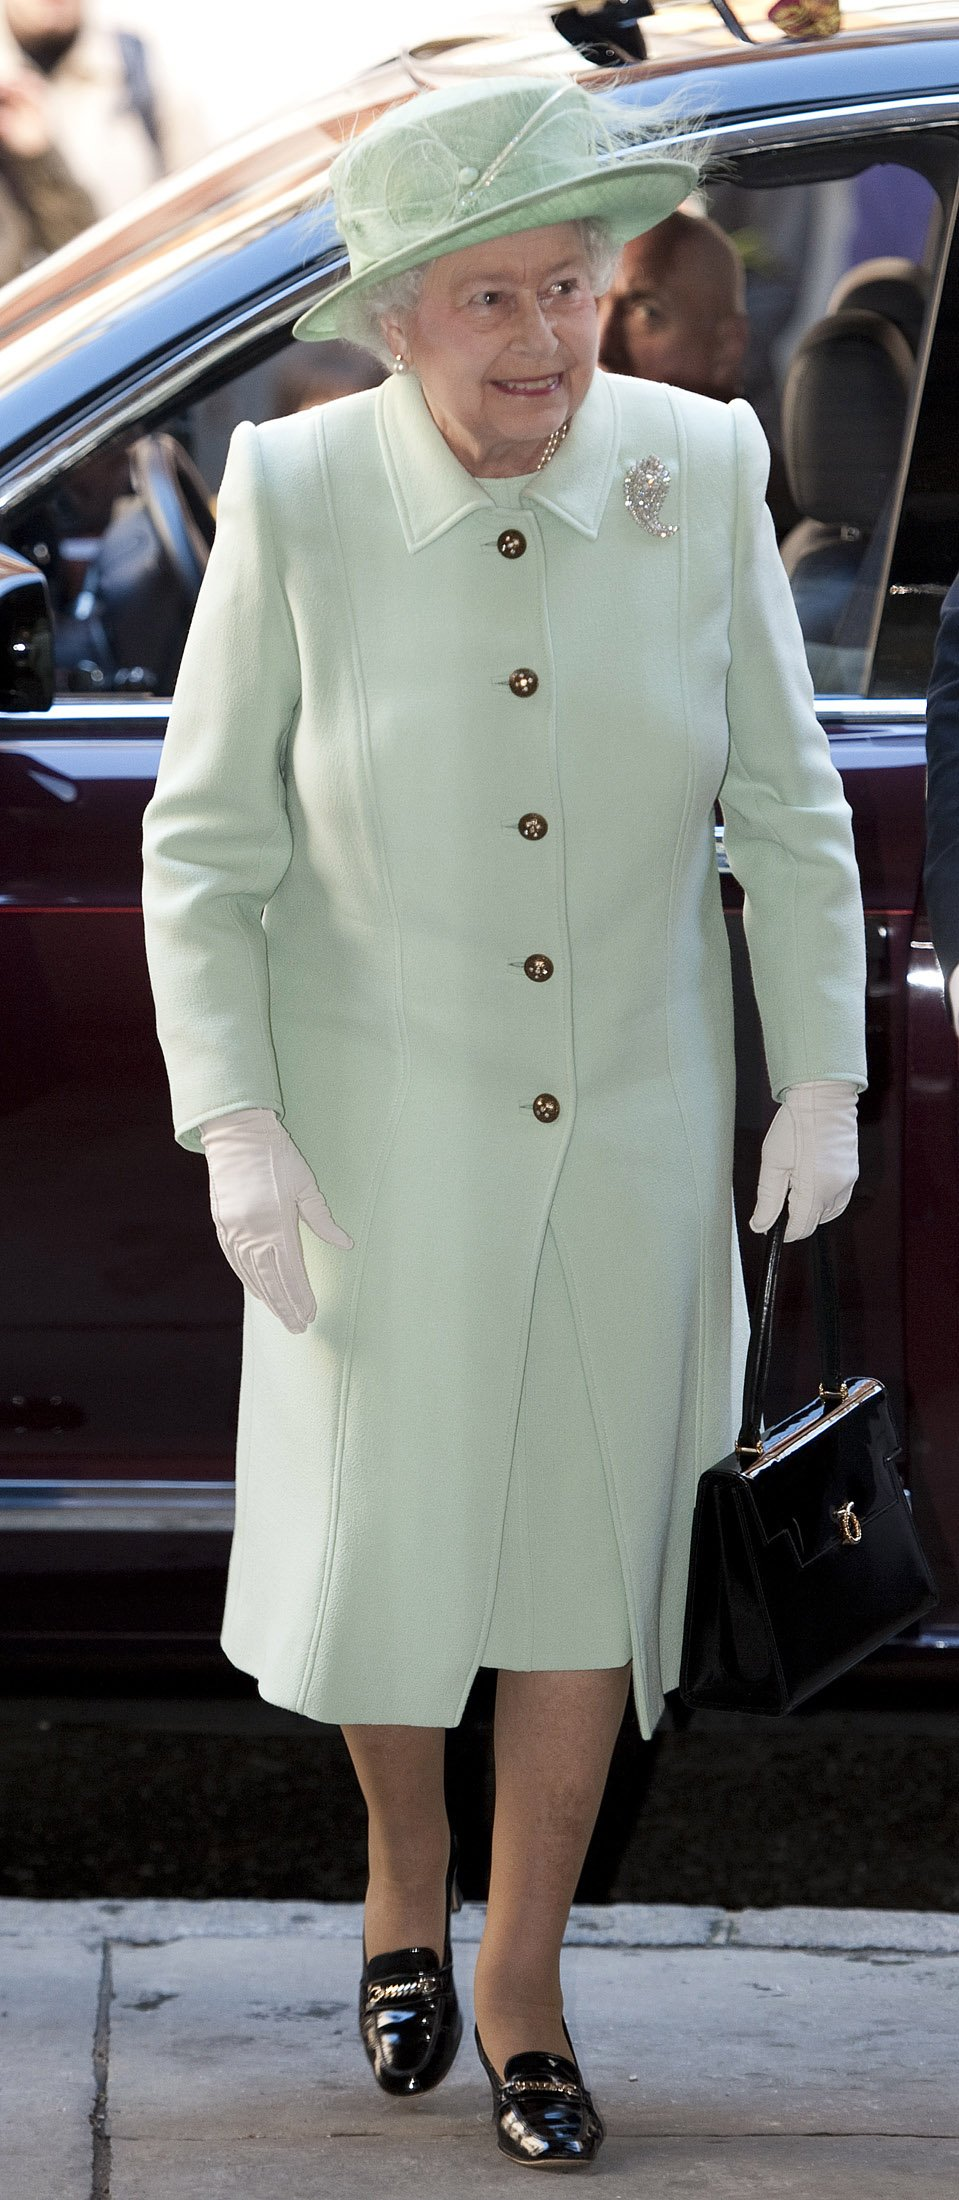 Queen Elizabeth II attends the unveiling of the Diamond Jubilee Stained Glass Window at The Queen